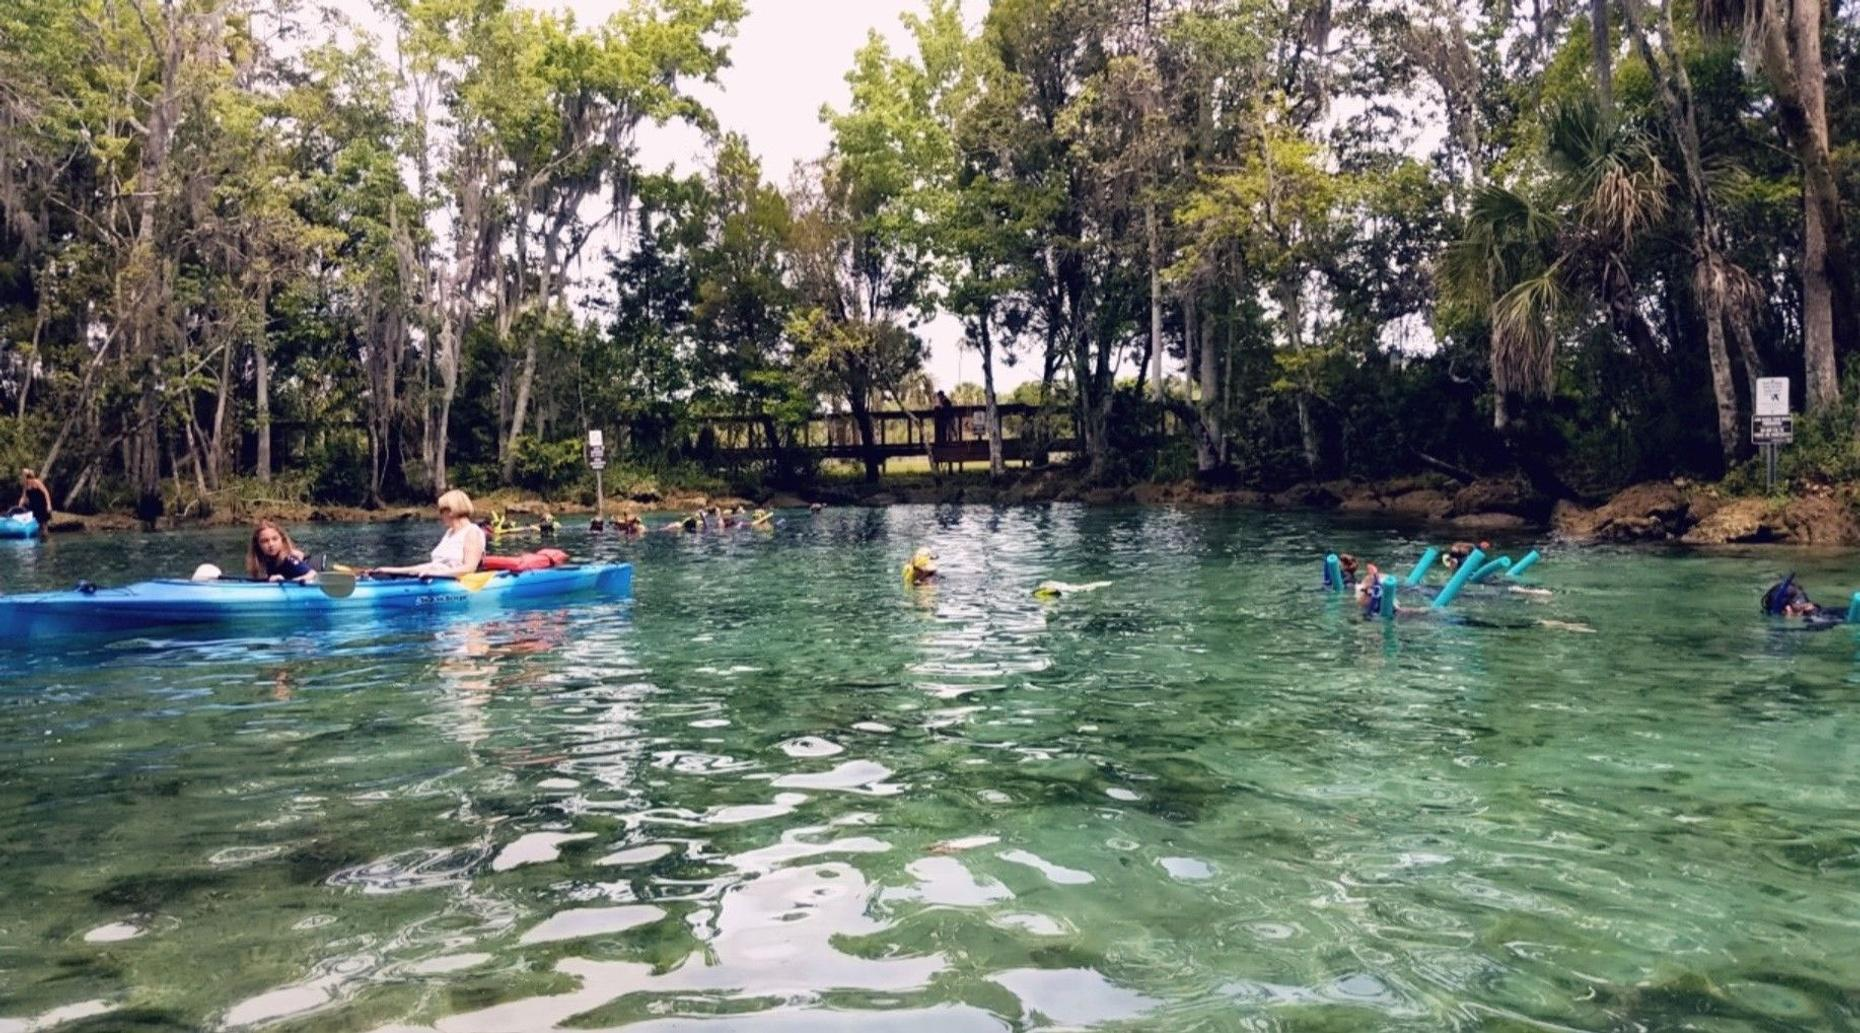 4-Hour Single Kayak Rental and Manatee Viewing in Crystal River